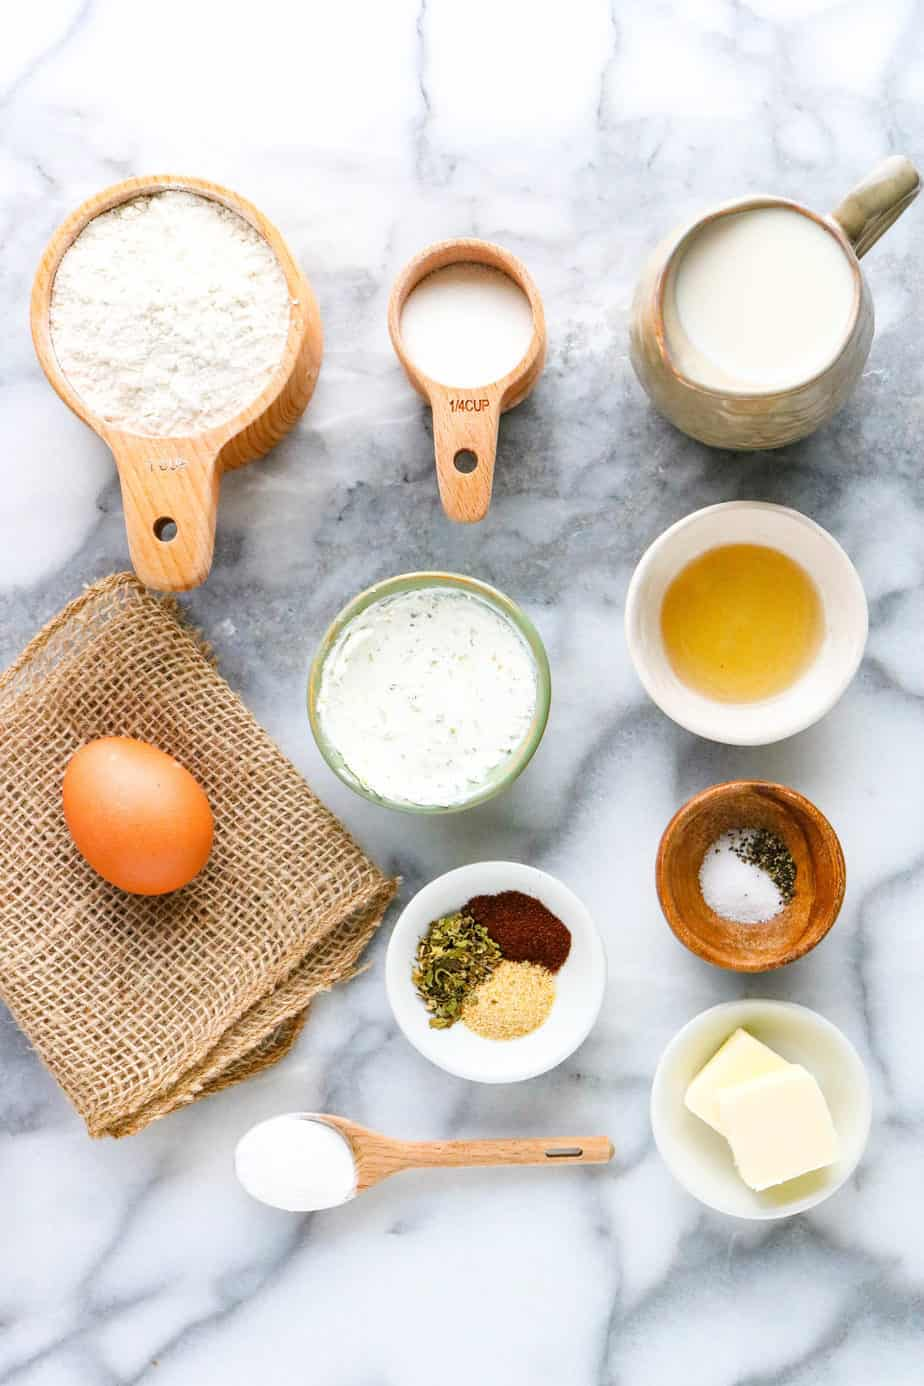 Gluten free herb and goat cheese biscuit ingredients